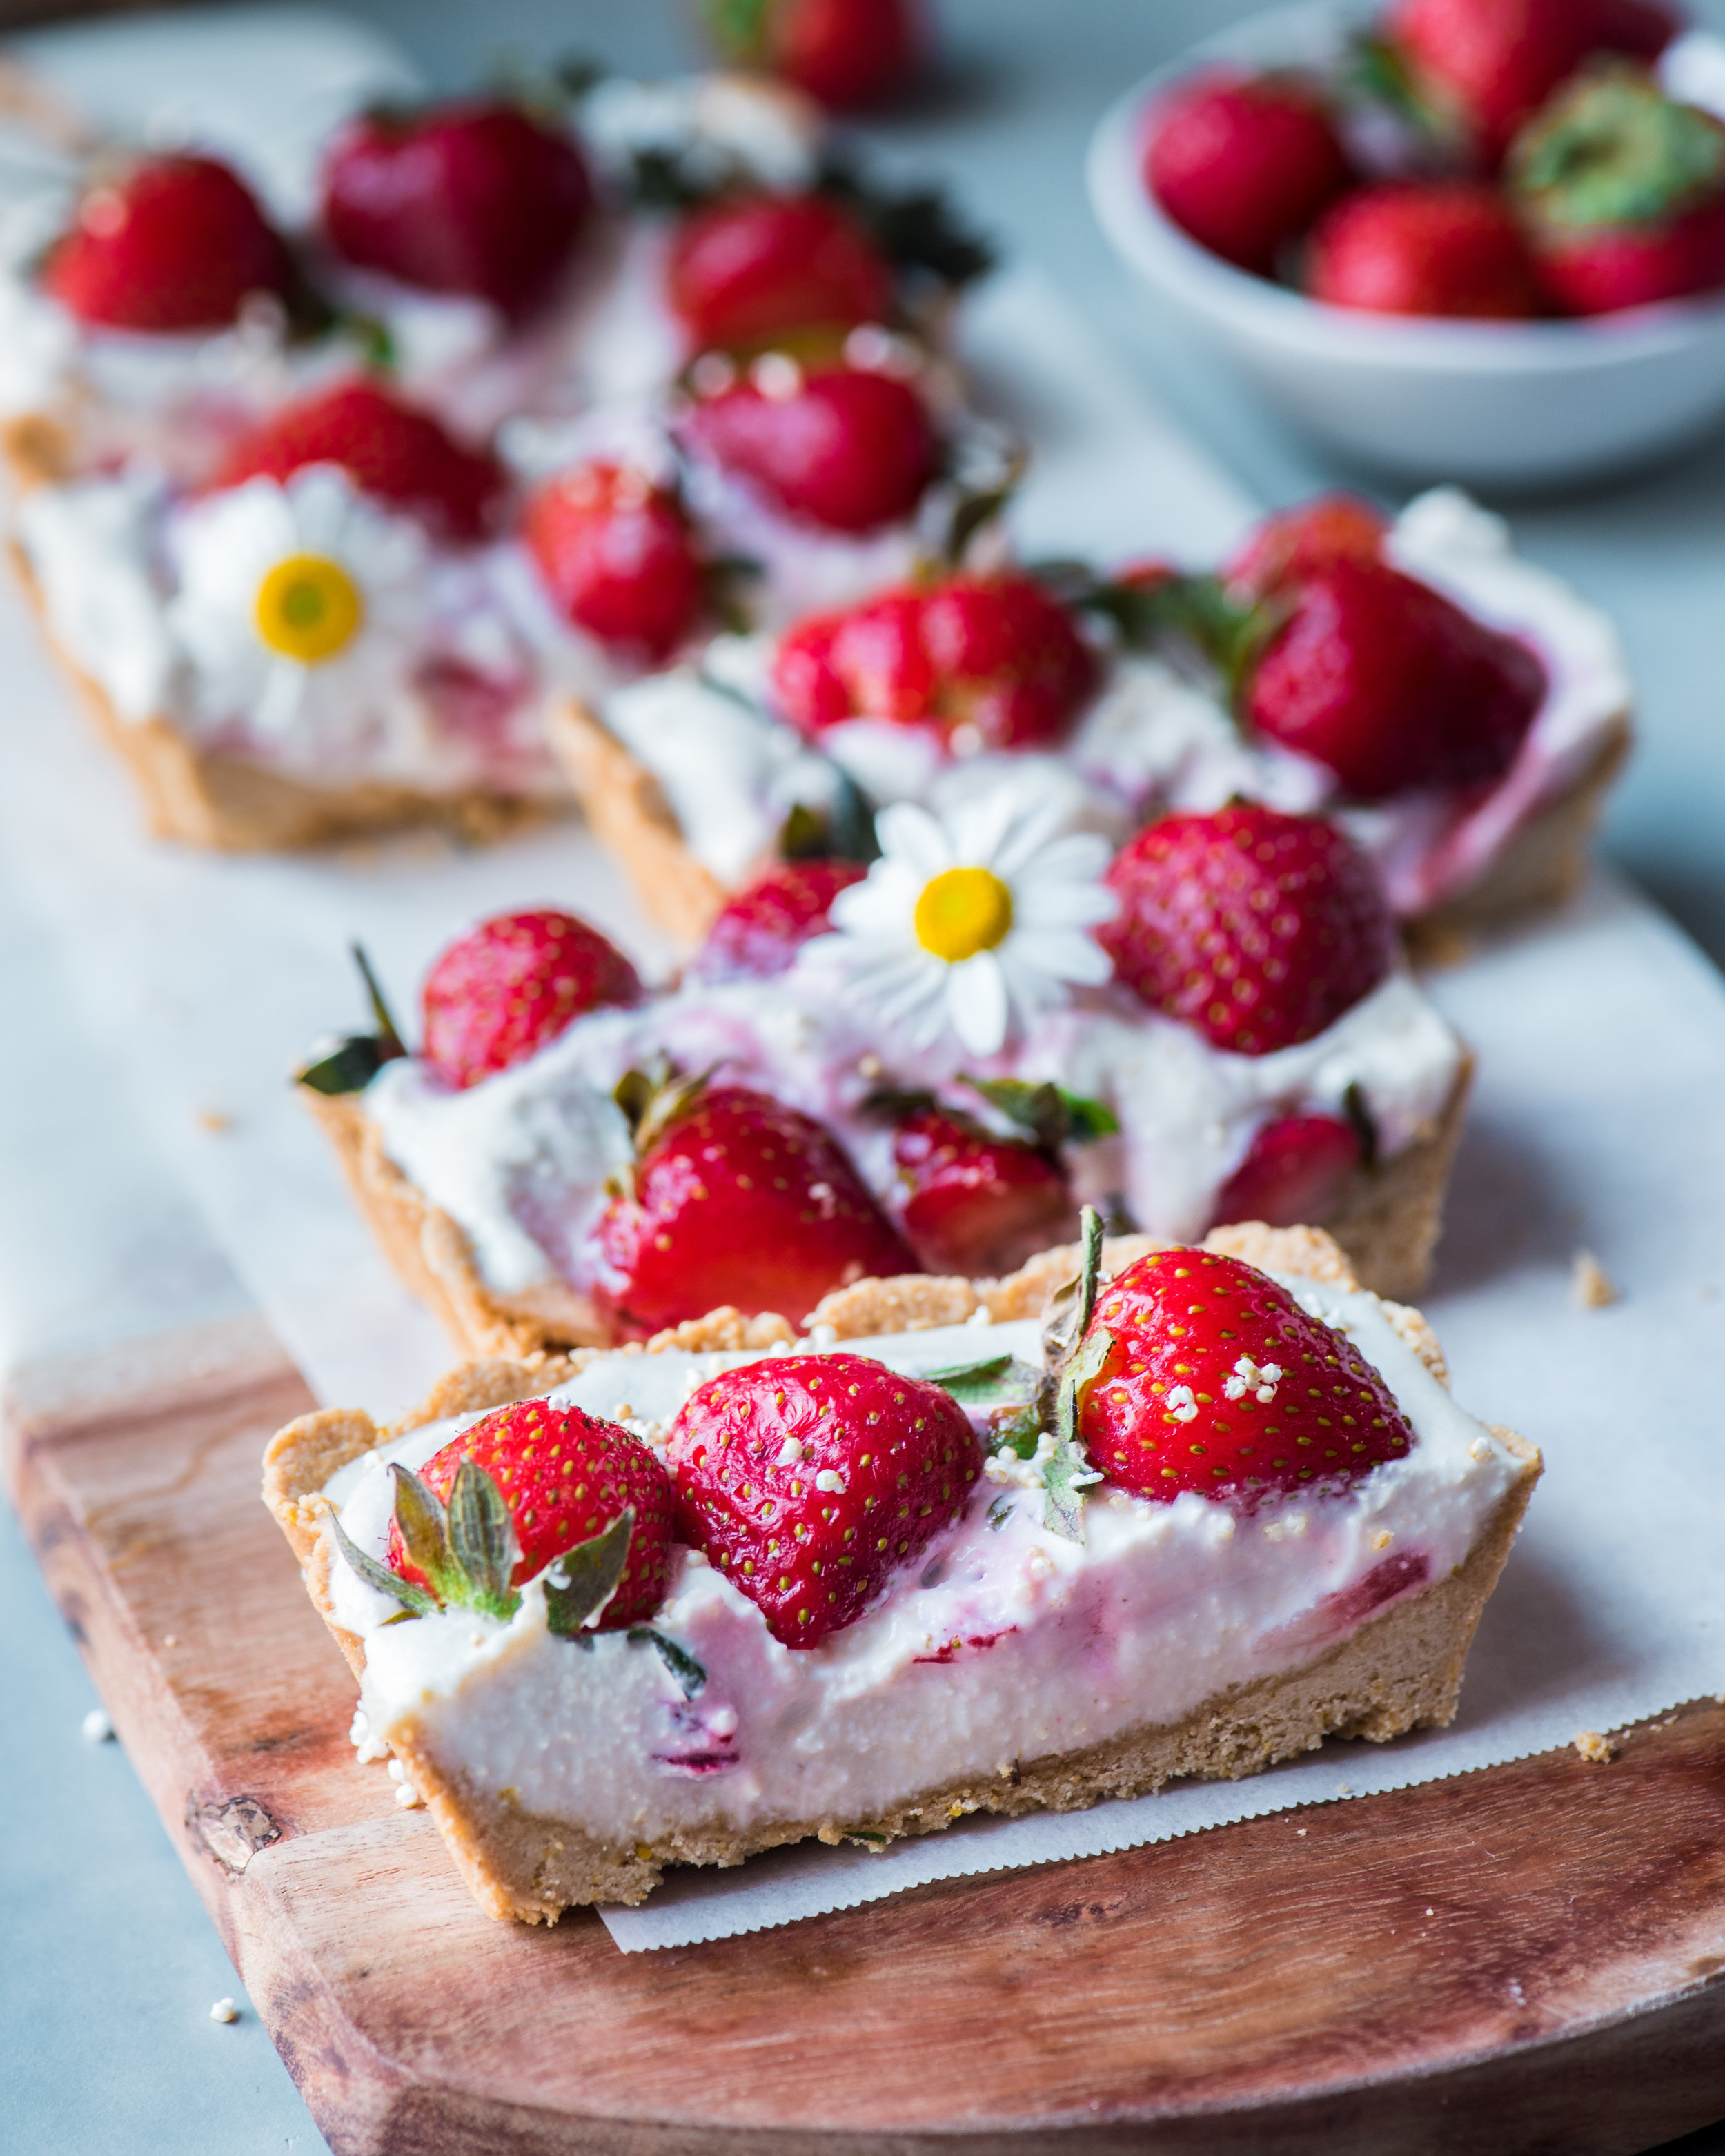 Vegan Strawberries and Cream Tart